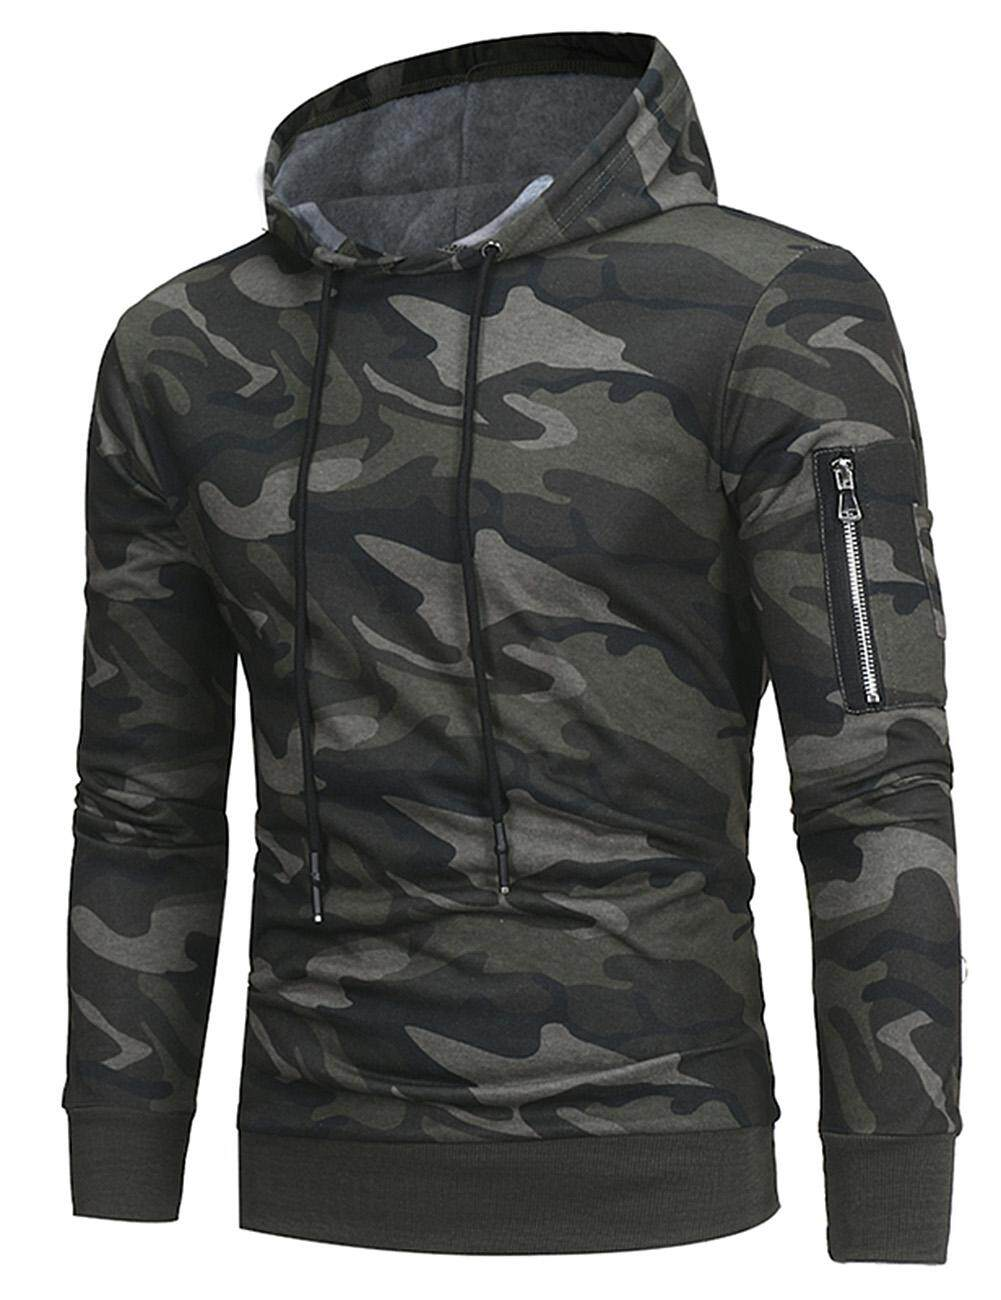 Big Sale Men Fashion Camouflage Hoodies Long Sleeve Casual Sweatshirts Slim Pullover By Four Season Big Sale.